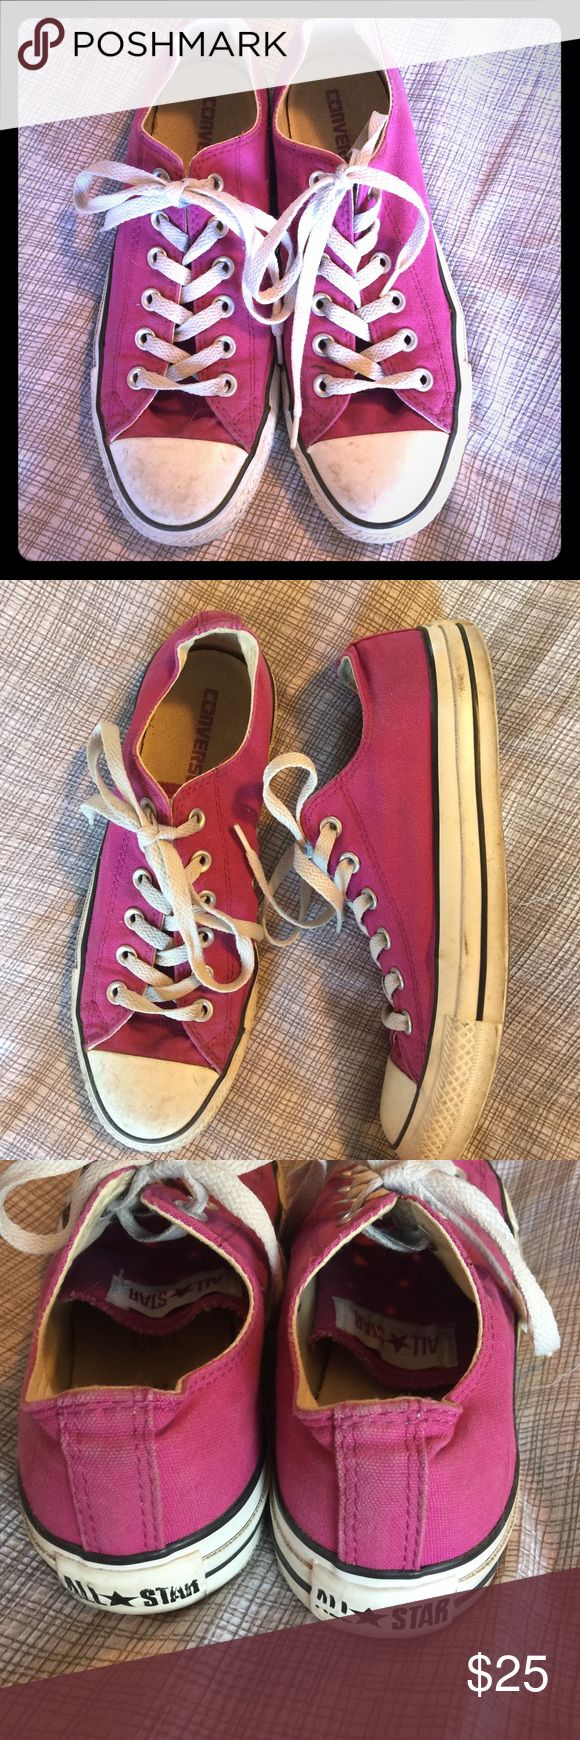 Converse Chuck Taylors purple/fuschia 8.5 These Chucks have been preloved but have a ton of life left in them! Classic Converse Chuck Taylor in fuschia size 8.5. Fits TTS. Converse Shoes Sneakers